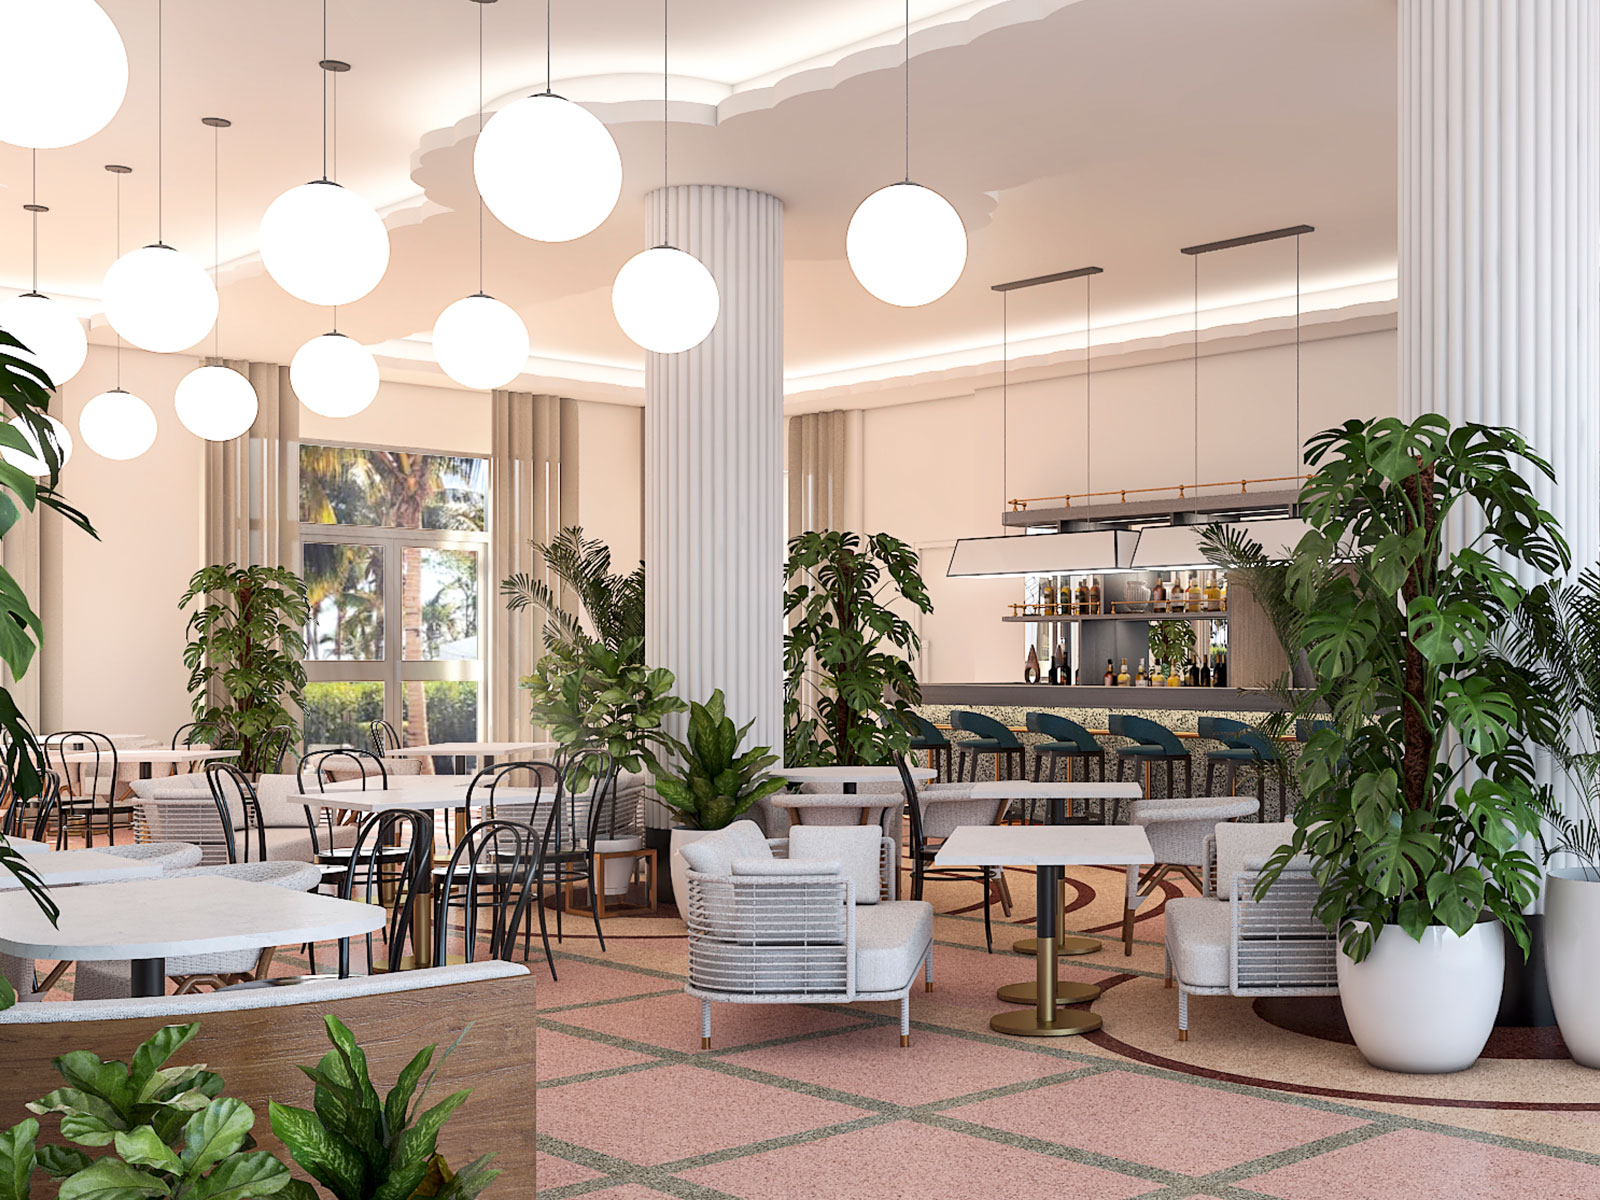 Michael Schwartz Opens Ninth Miami Restaurant as His Empire Goes National